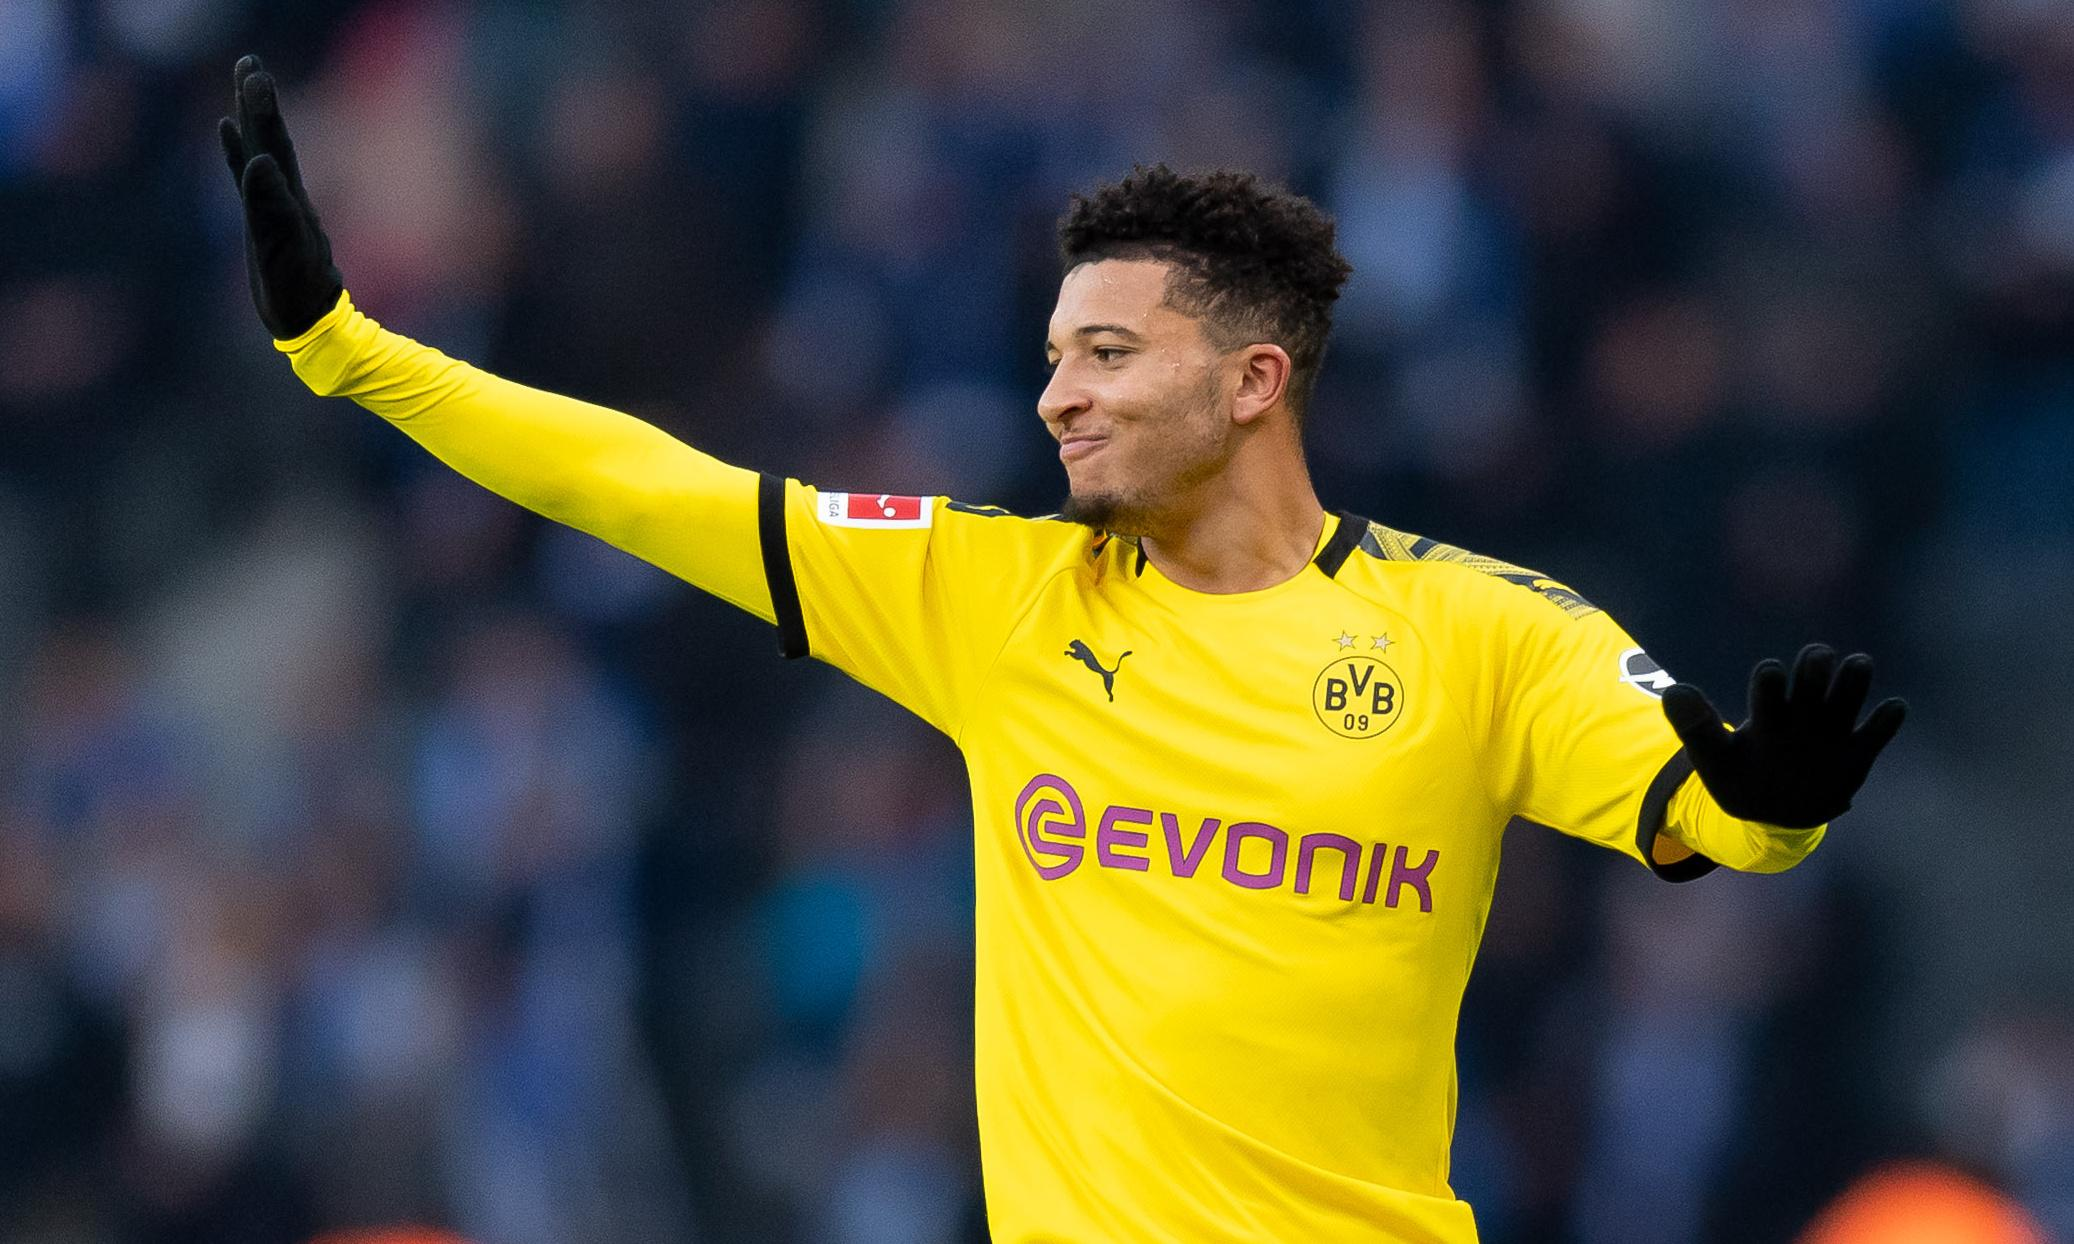 Football transfer rumours: Sancho and Sander Berge to Liverpool?